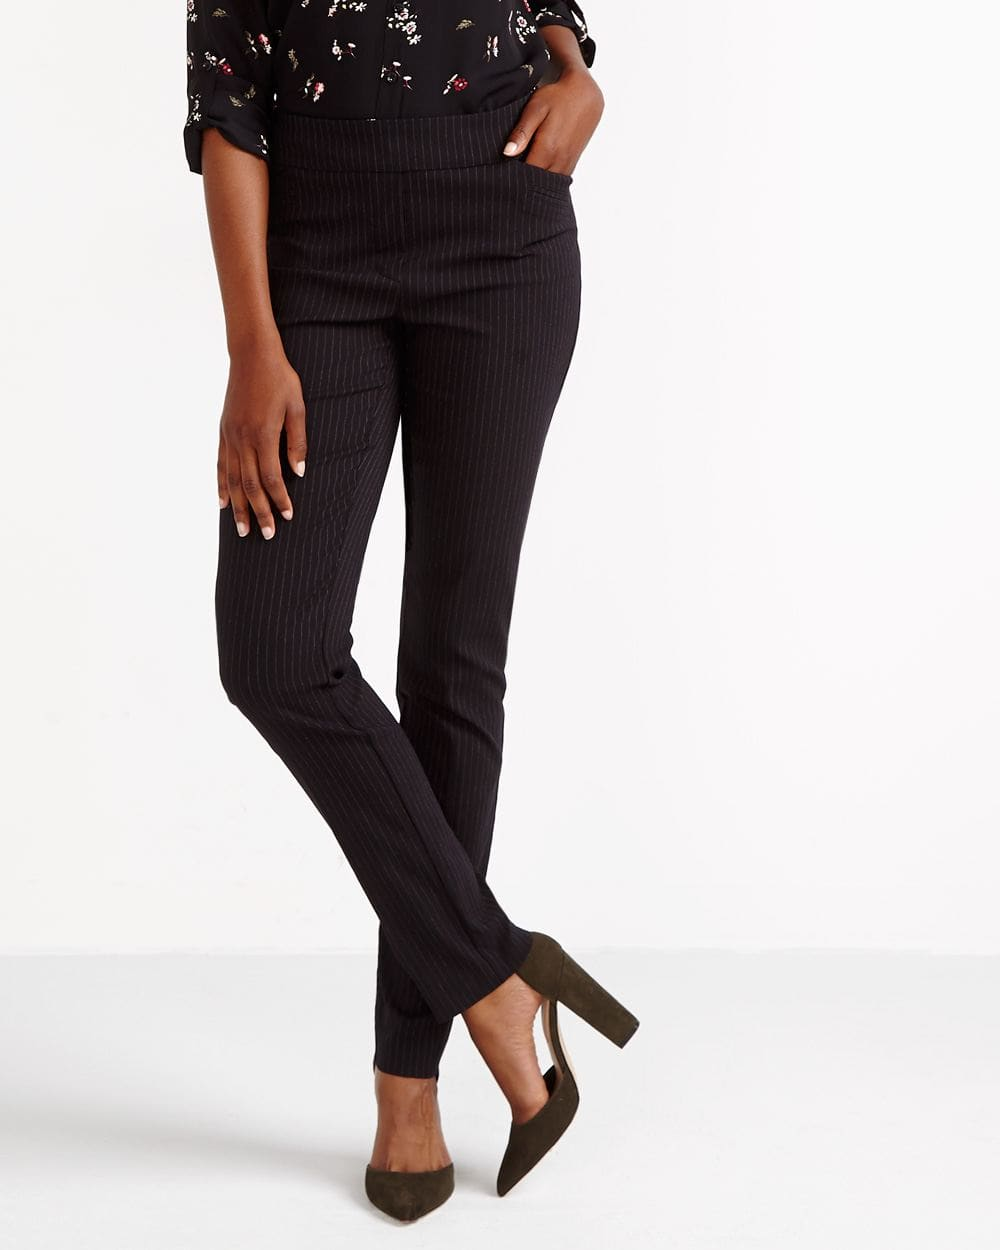 The Tall Iconic Straight Leg Striped Pants